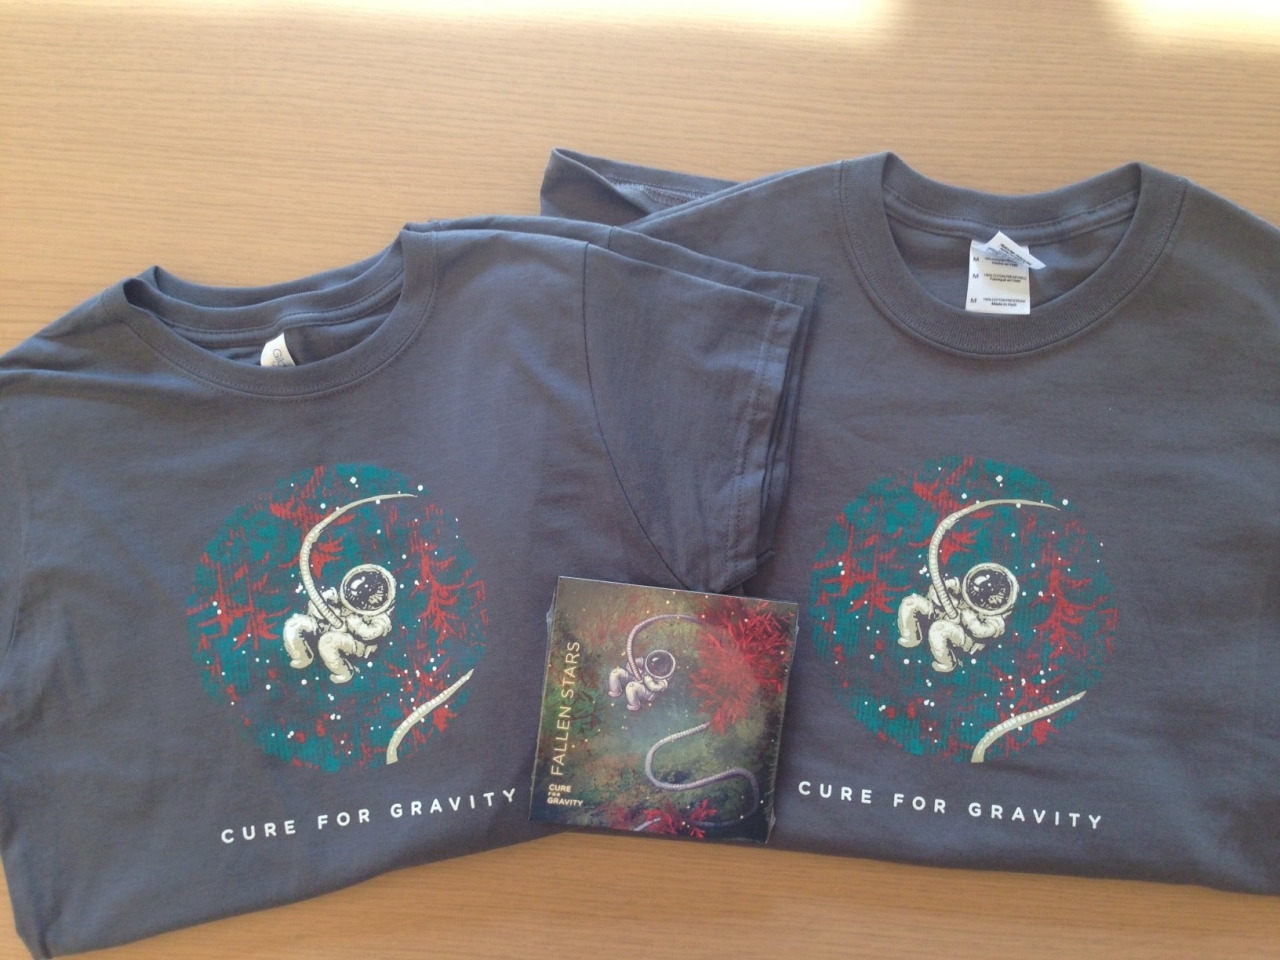 New Cure for Gravity shirts in da house!  Come grab yours at the Milk Bar show tomorrow night in San Francisco!  Buy two and get a copy of our Fallen Stars EP for Free!    http://www.milksf.com/shows/epilogues-gold-medalists-cure-gravity-together-we-can-rule-galaxy